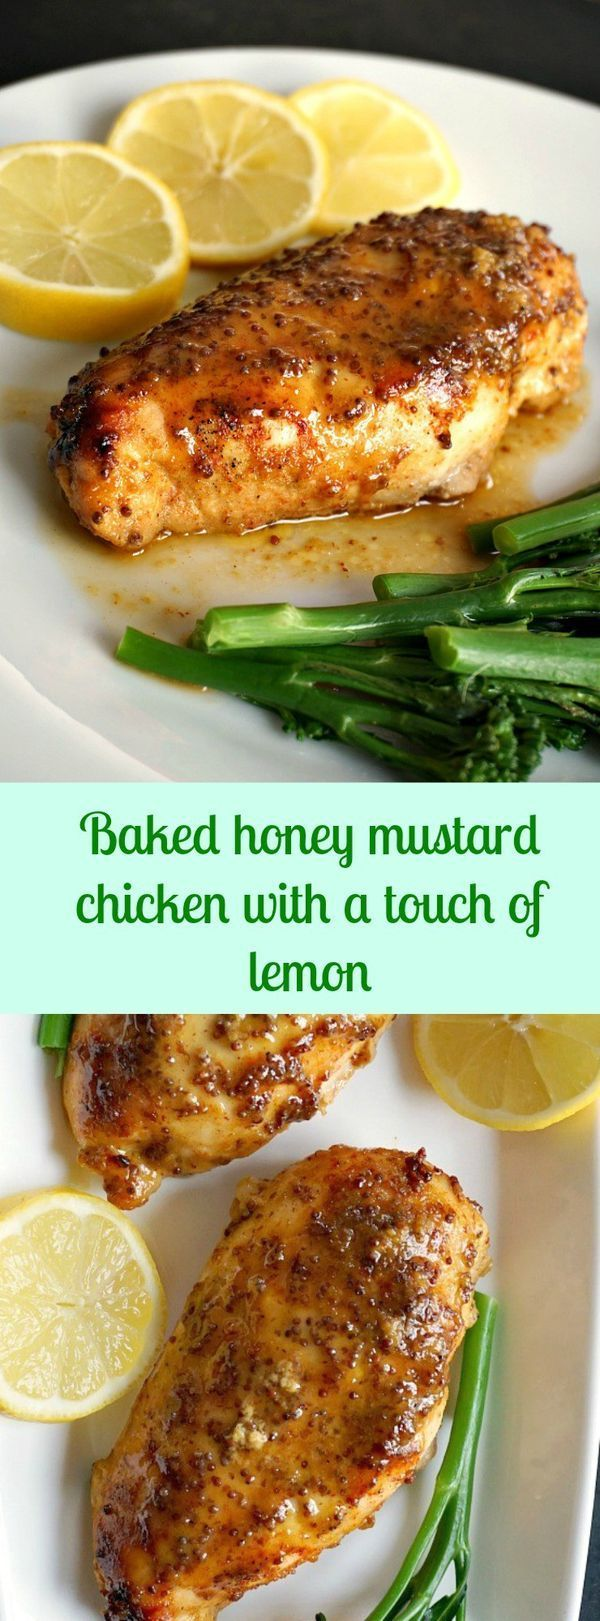 Baked honey mustard chicken with a touch of lemon, a fantastic meal for two. Healthy, easy to make, and so delicious. Why not give it a try for Valentine's Day? (Simple Chicken Meals)